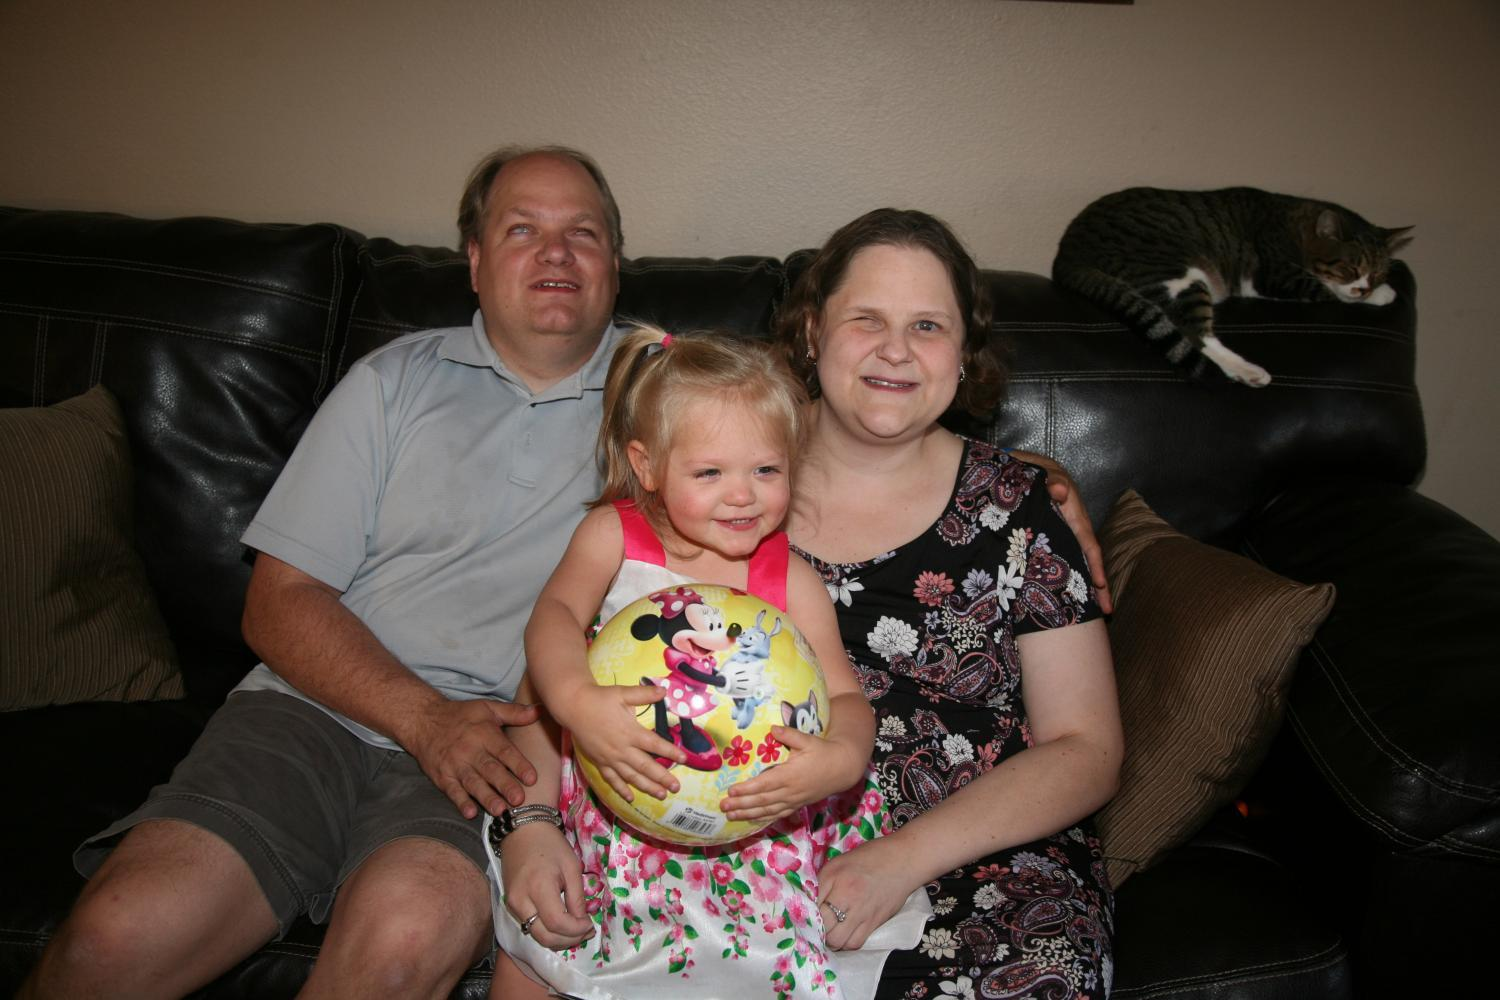 Darrell and Allison Hilliker sit with their 2-year-old daughter, Allyssa, and their cat, Chaos, on their couch.